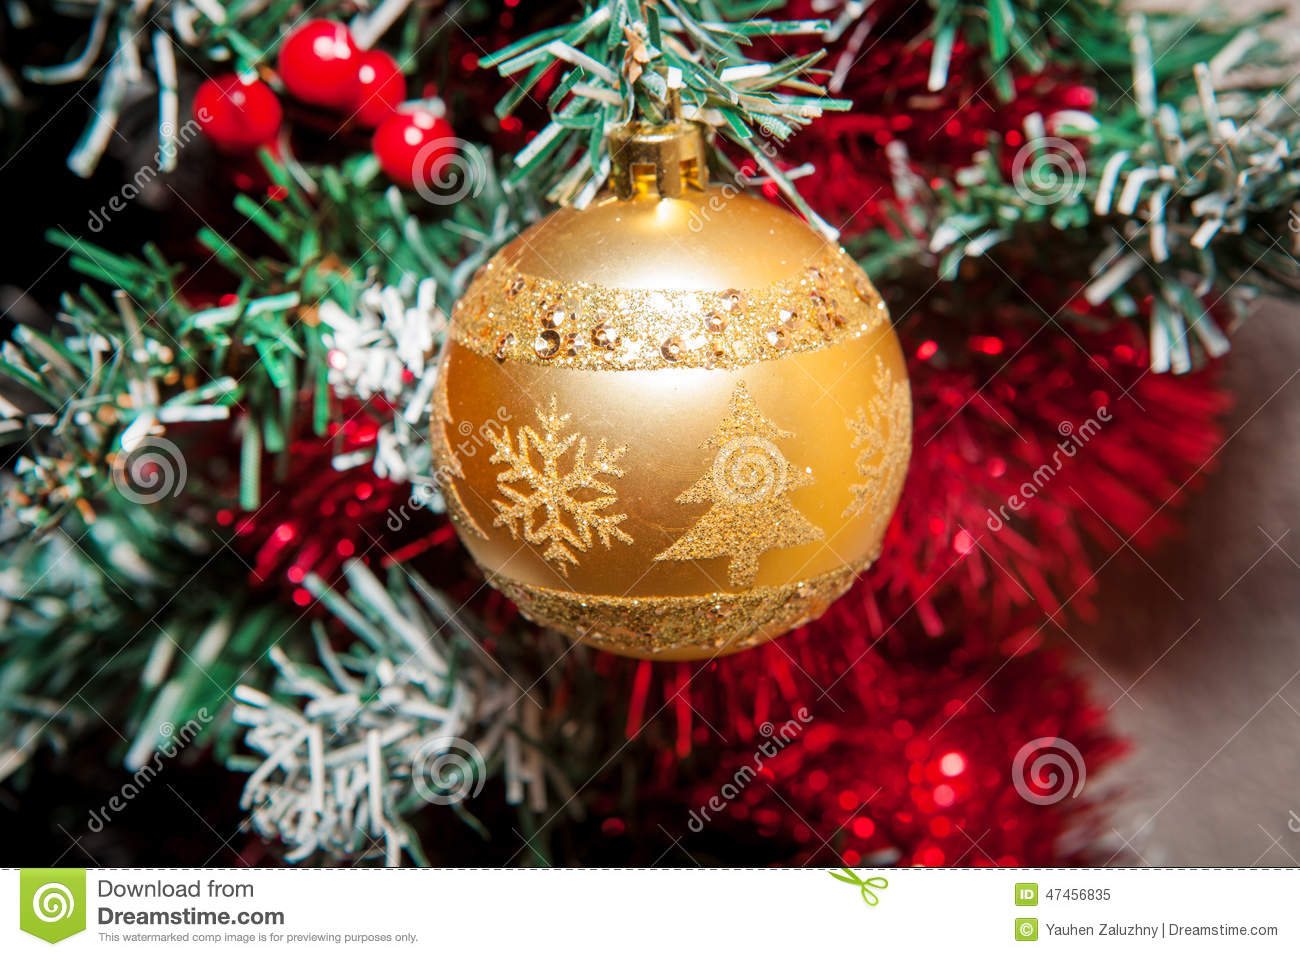 Christmas Ornaments Bells Stars Balls Christmas: latest christmas decorations